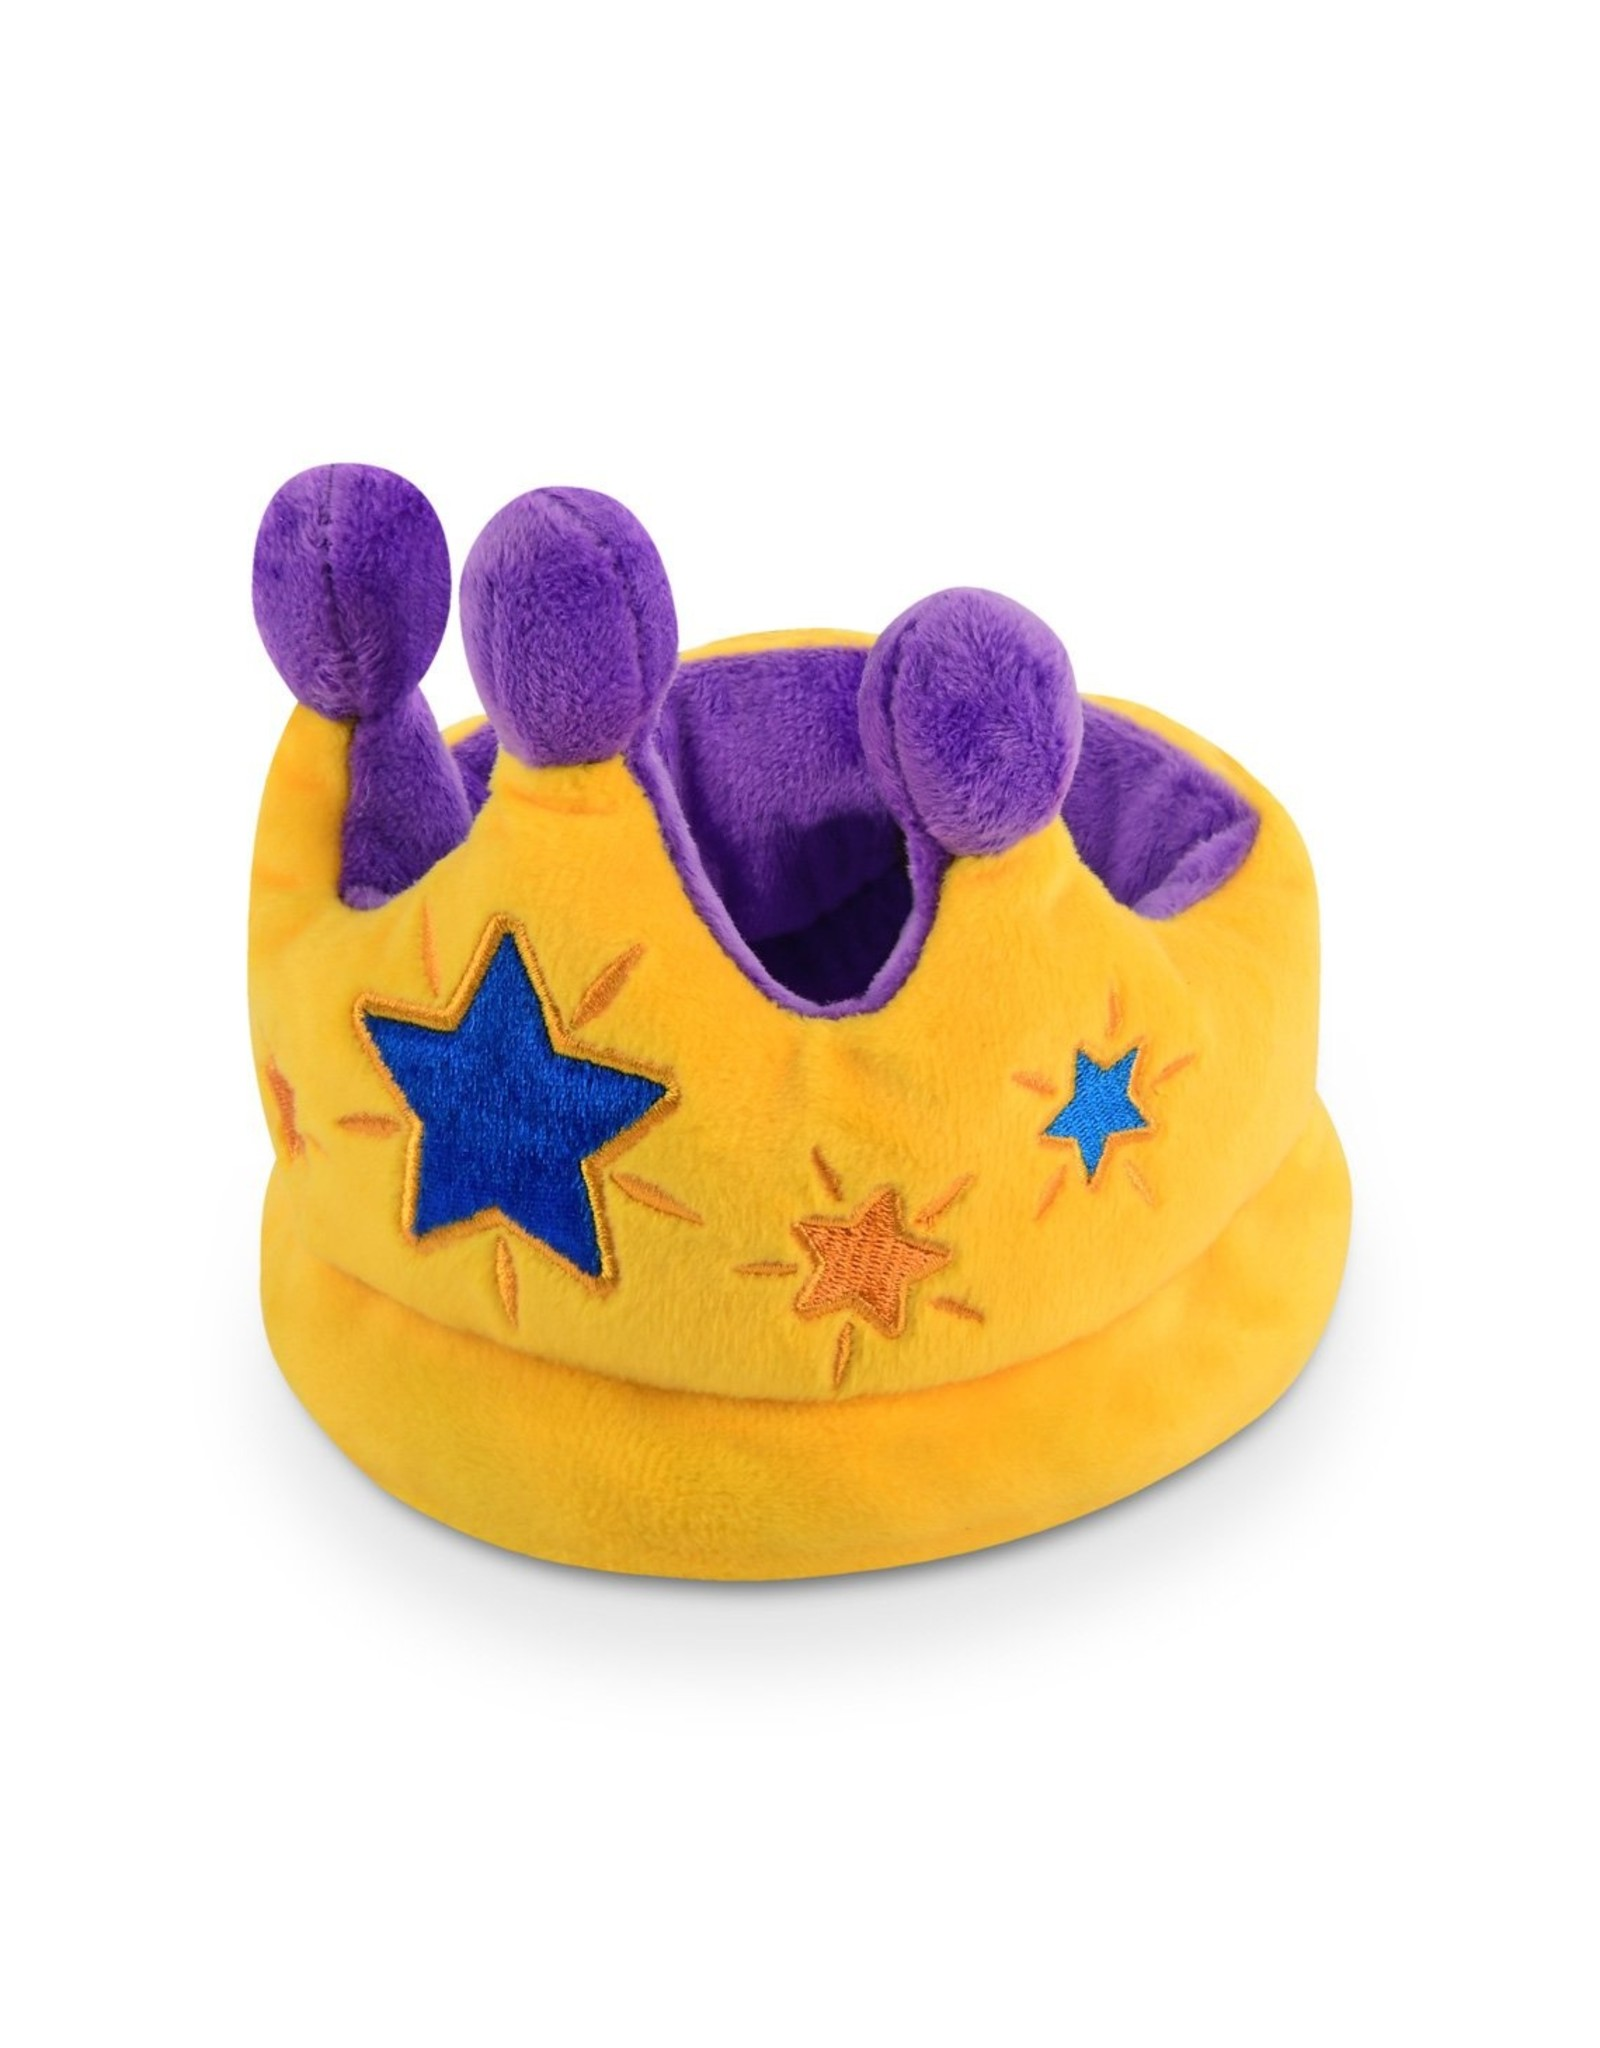 P.L.A.Y. Pet Lifestyle and You P.L.A.Y. PARTY TIME COLLECTION CANINE CROWN TOY